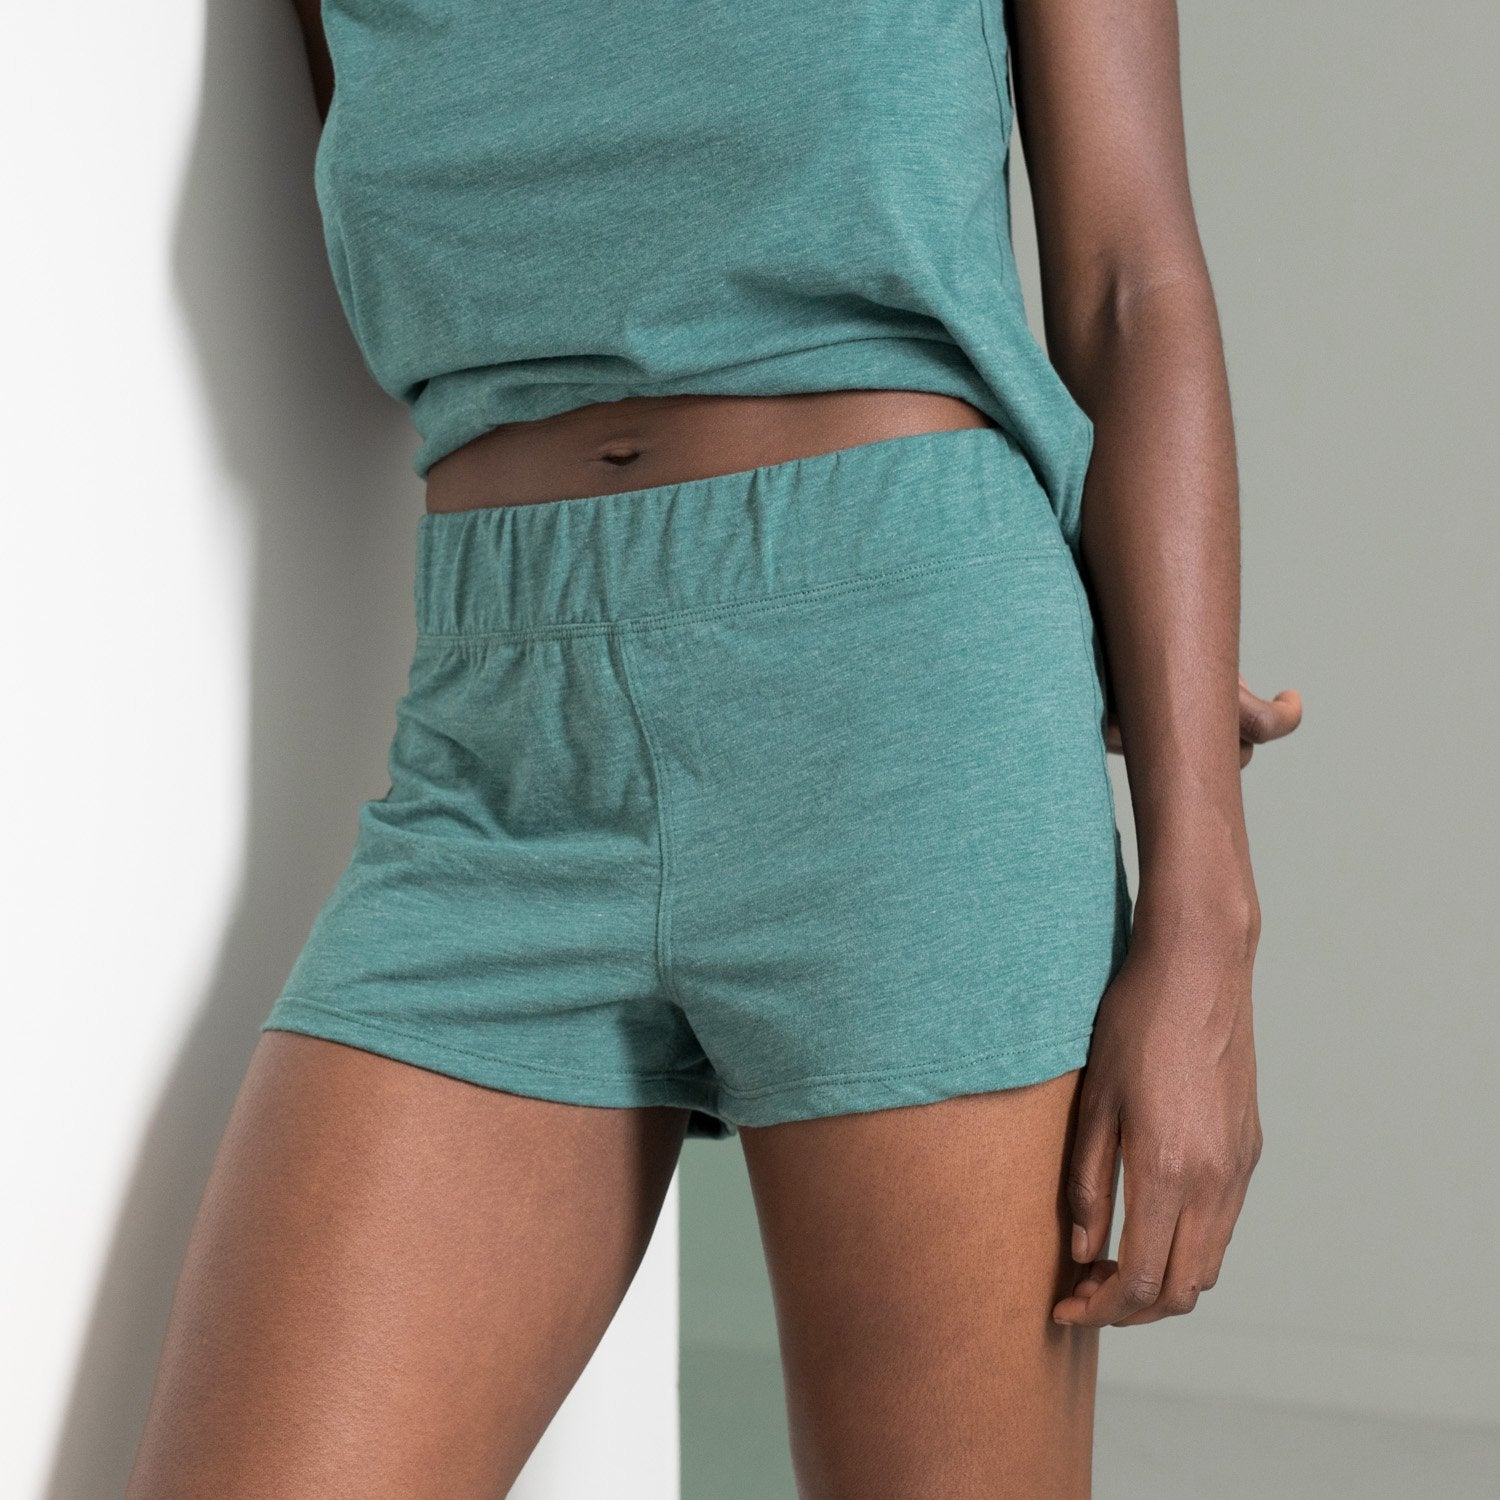 Lunya Sleepwear Restore Short - #Stem